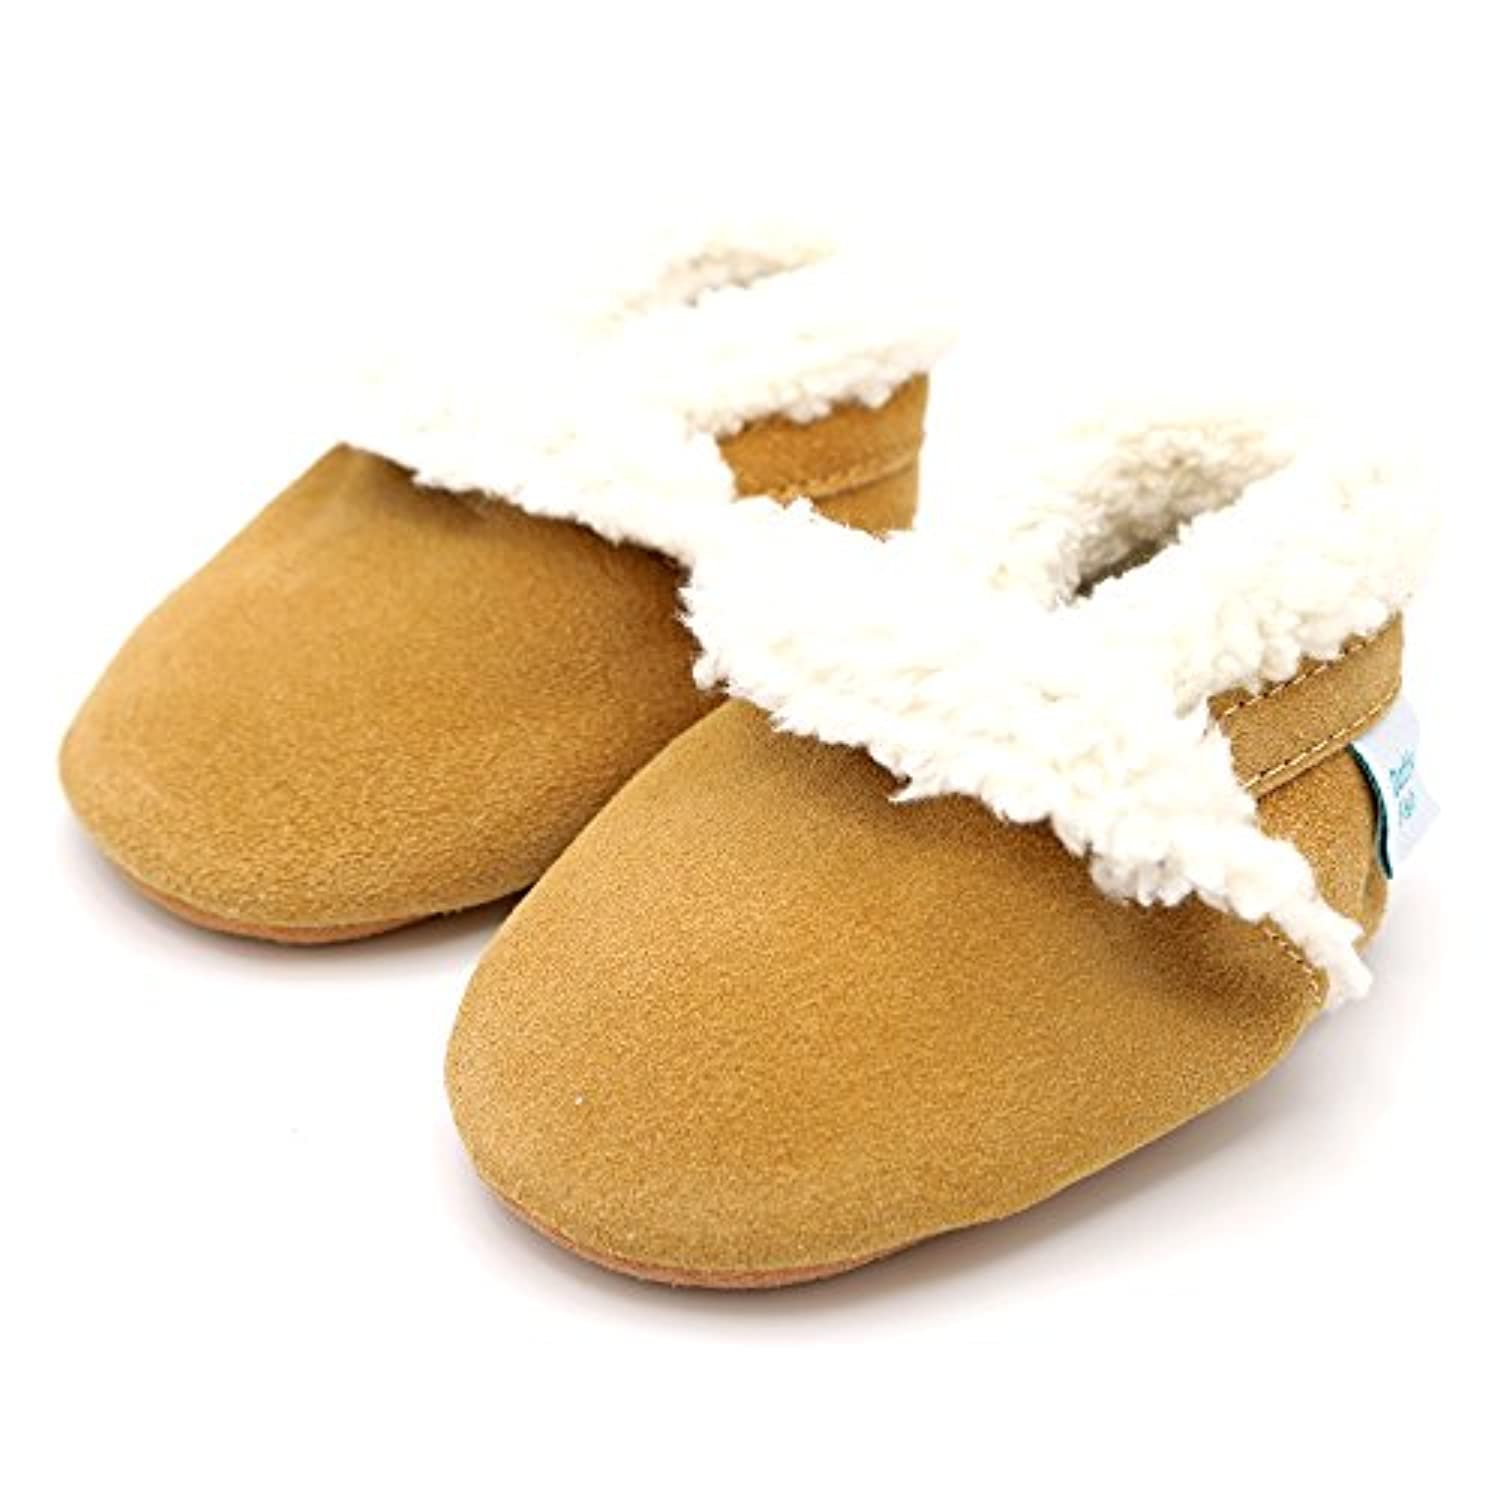 Soft suede baby slippers for boys or girls by Dotty Fish with Suede Soles. Tan - 0-6 months